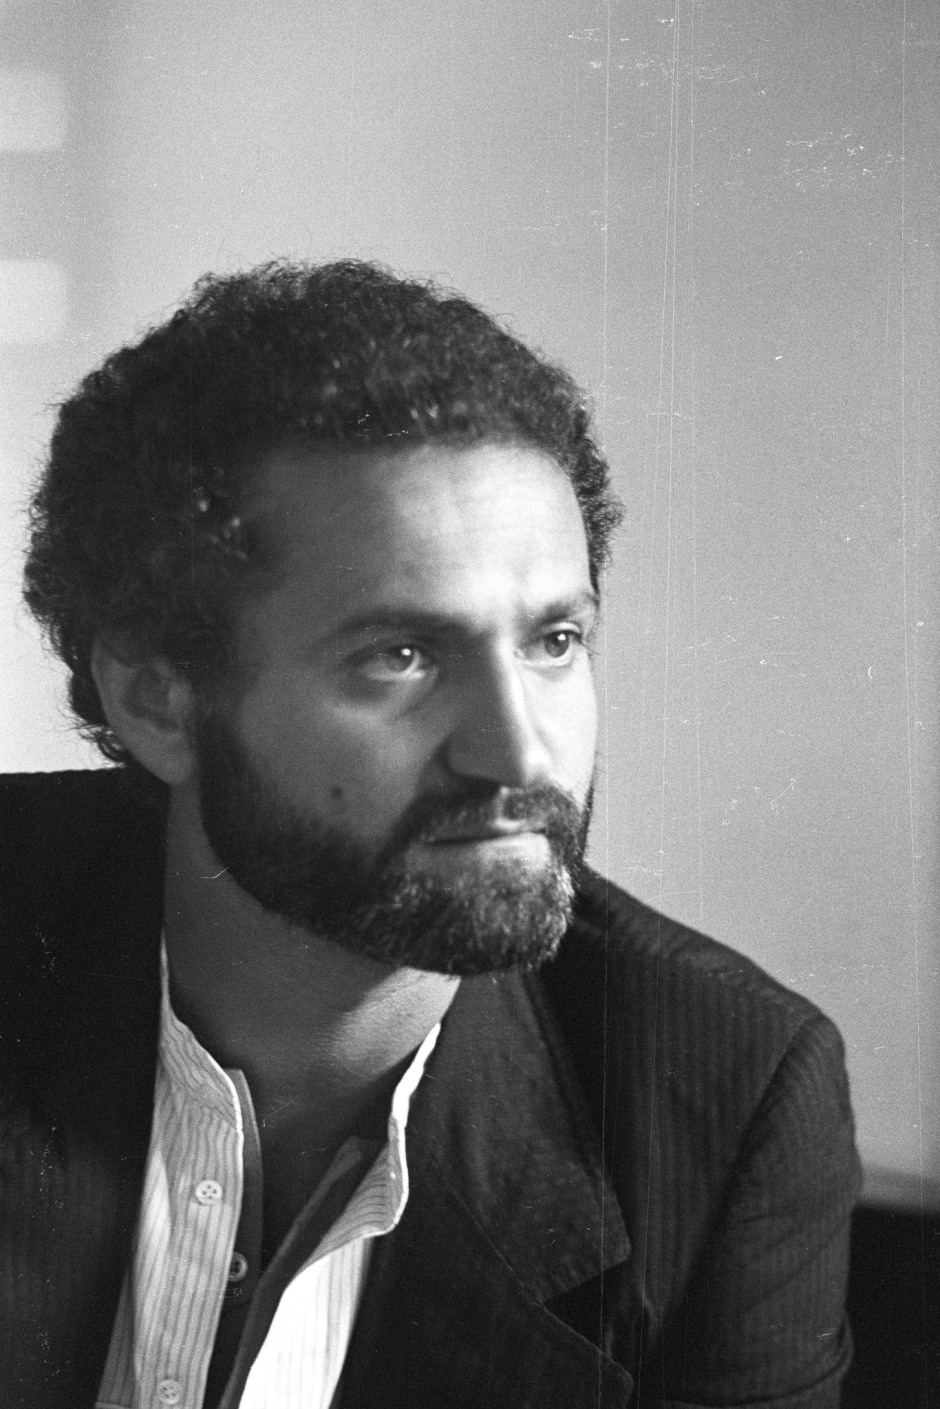 Portrait of fashion designer Gianni Versace circa 1977.